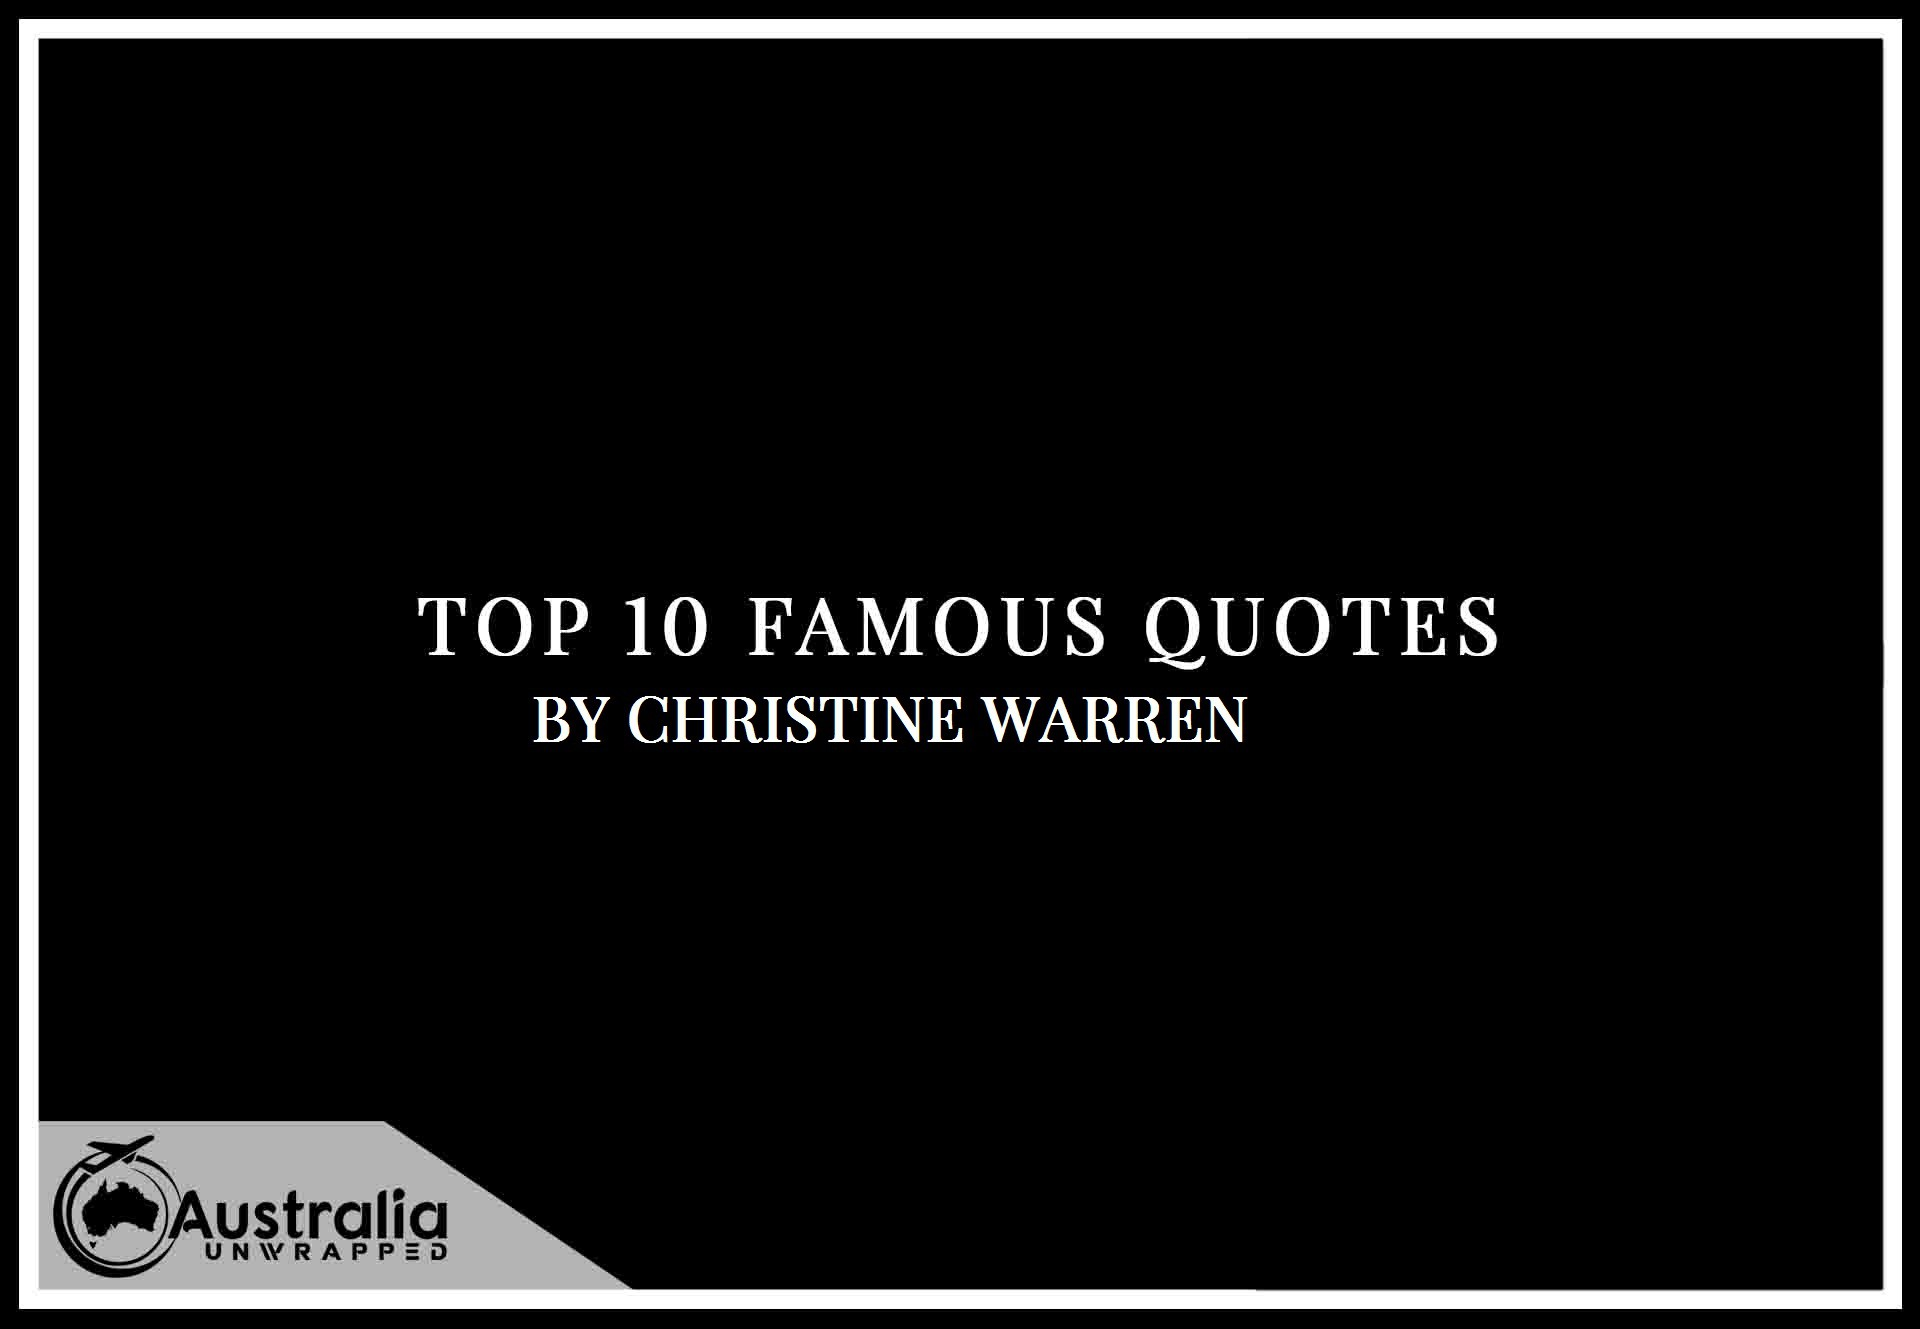 Christine Warren's Top 10 Popular and Famous Quotes